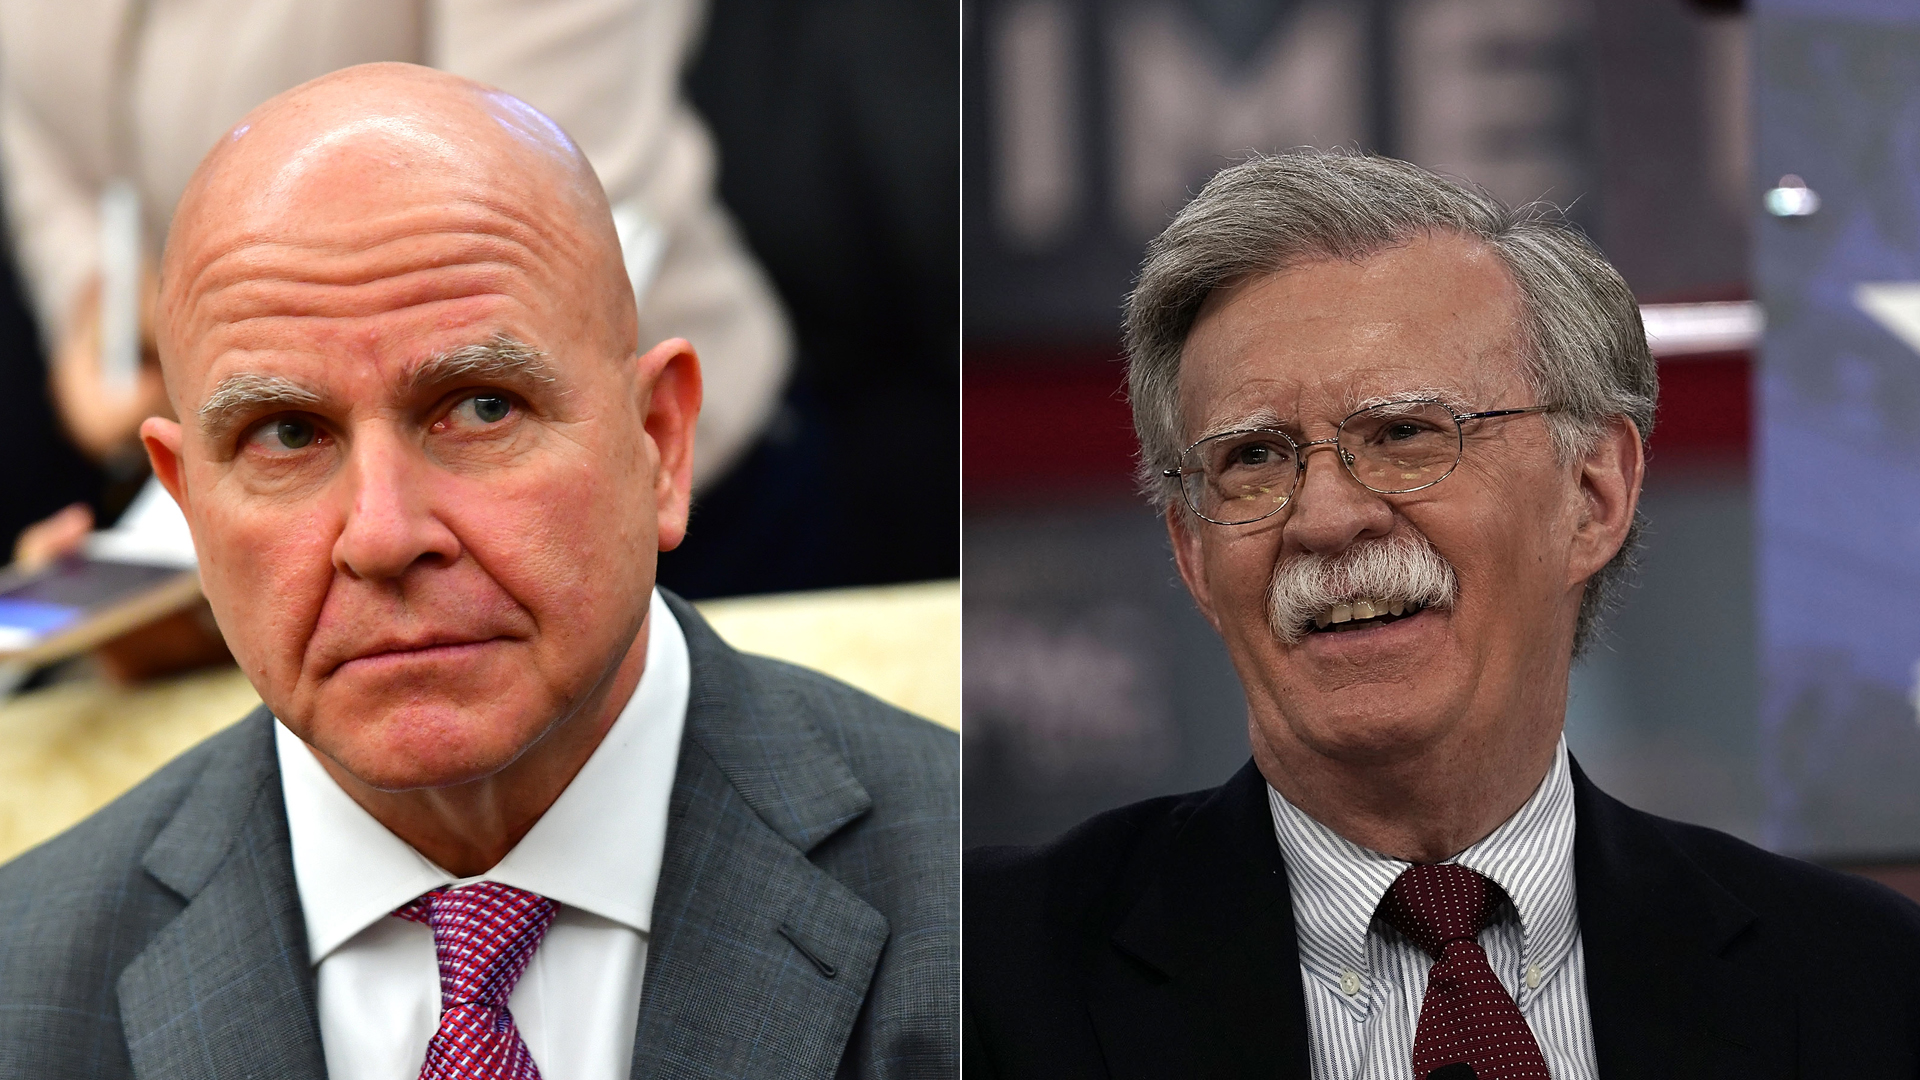 National Security Adviser H.R. McMaster (left) attends a meeting at the Oval Office on March 20, 2018. Former U.S. Ambassador to the United Nations John Bolton (right) speaks during CPAC 2018 February 22, 2018 in National Harbor, Maryland. (Credit: Kevin Dietsch-Pool and Alex Wong/Getty Images)